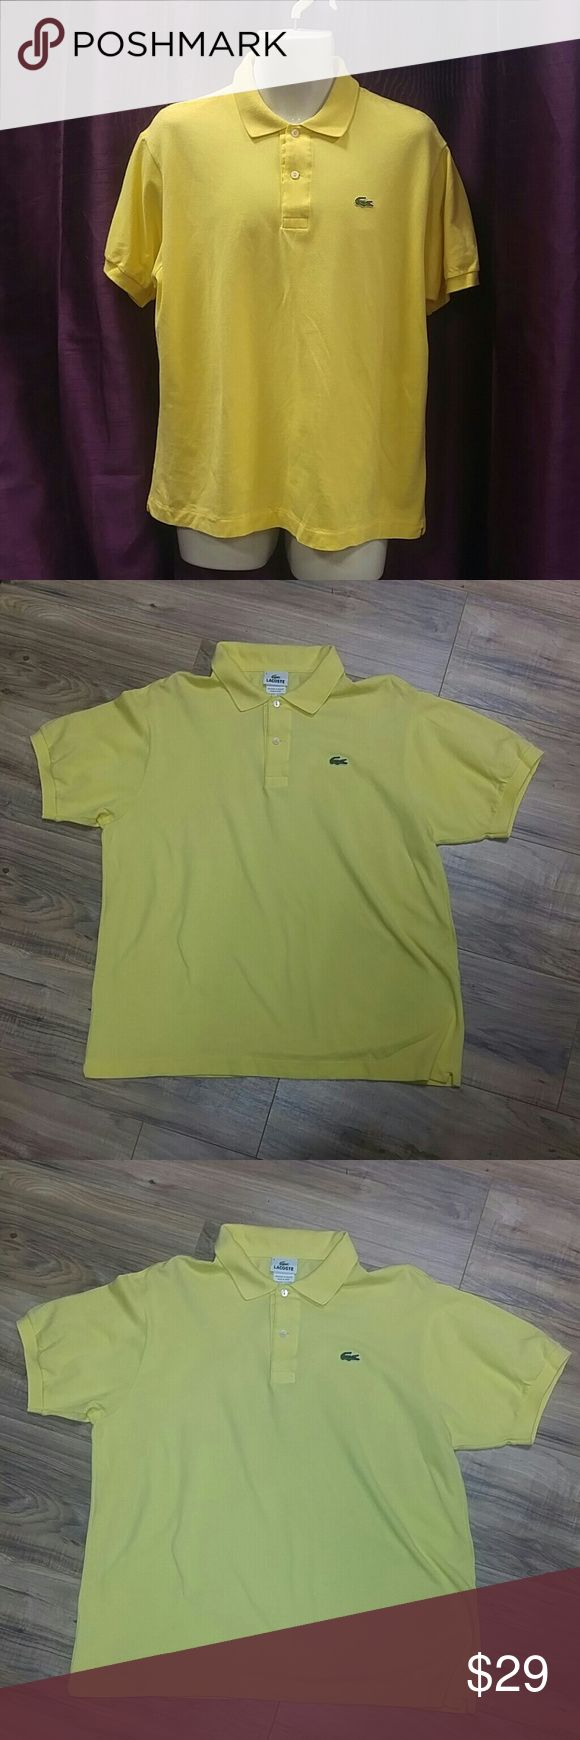 Lacoste Men XL 6 butter yellow polo collar shirt In gently used condition. Color is most accurate on purple background. See size chart. 6 is equivalent to US size XL. Lacoste Shirts Polos